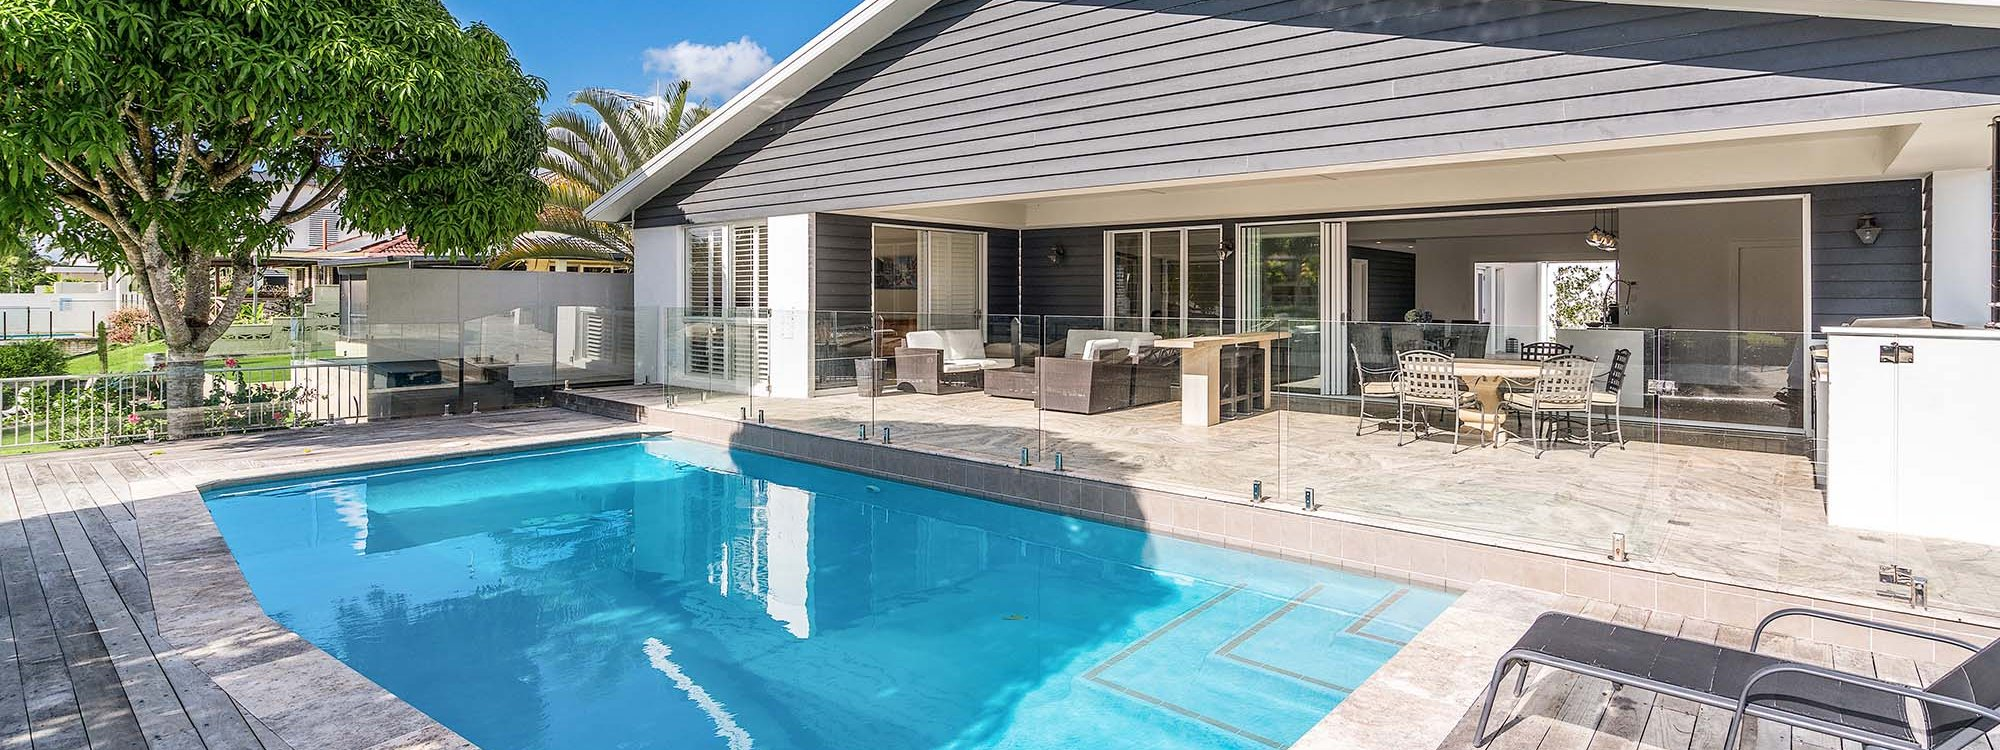 Casa Royale - Broadbeach Waters - Pool and House Side On